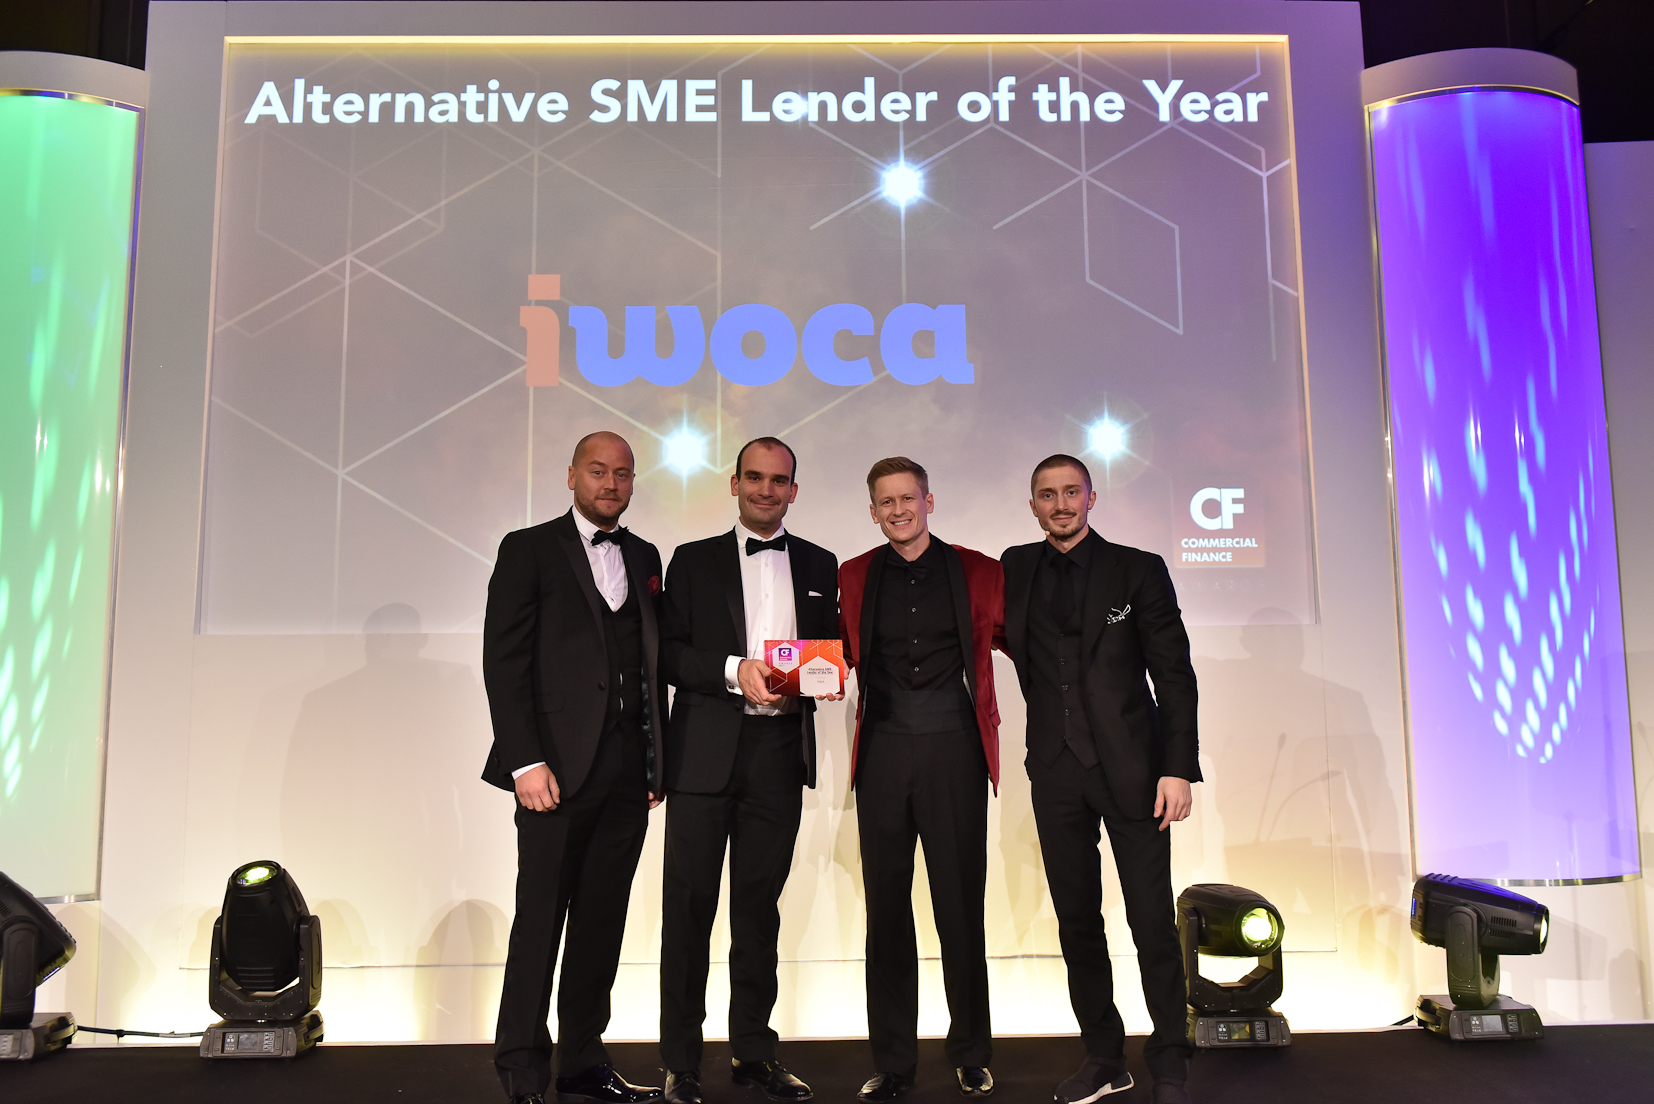 Comm Fin Awards 1 Alternative SME Lender of the Year